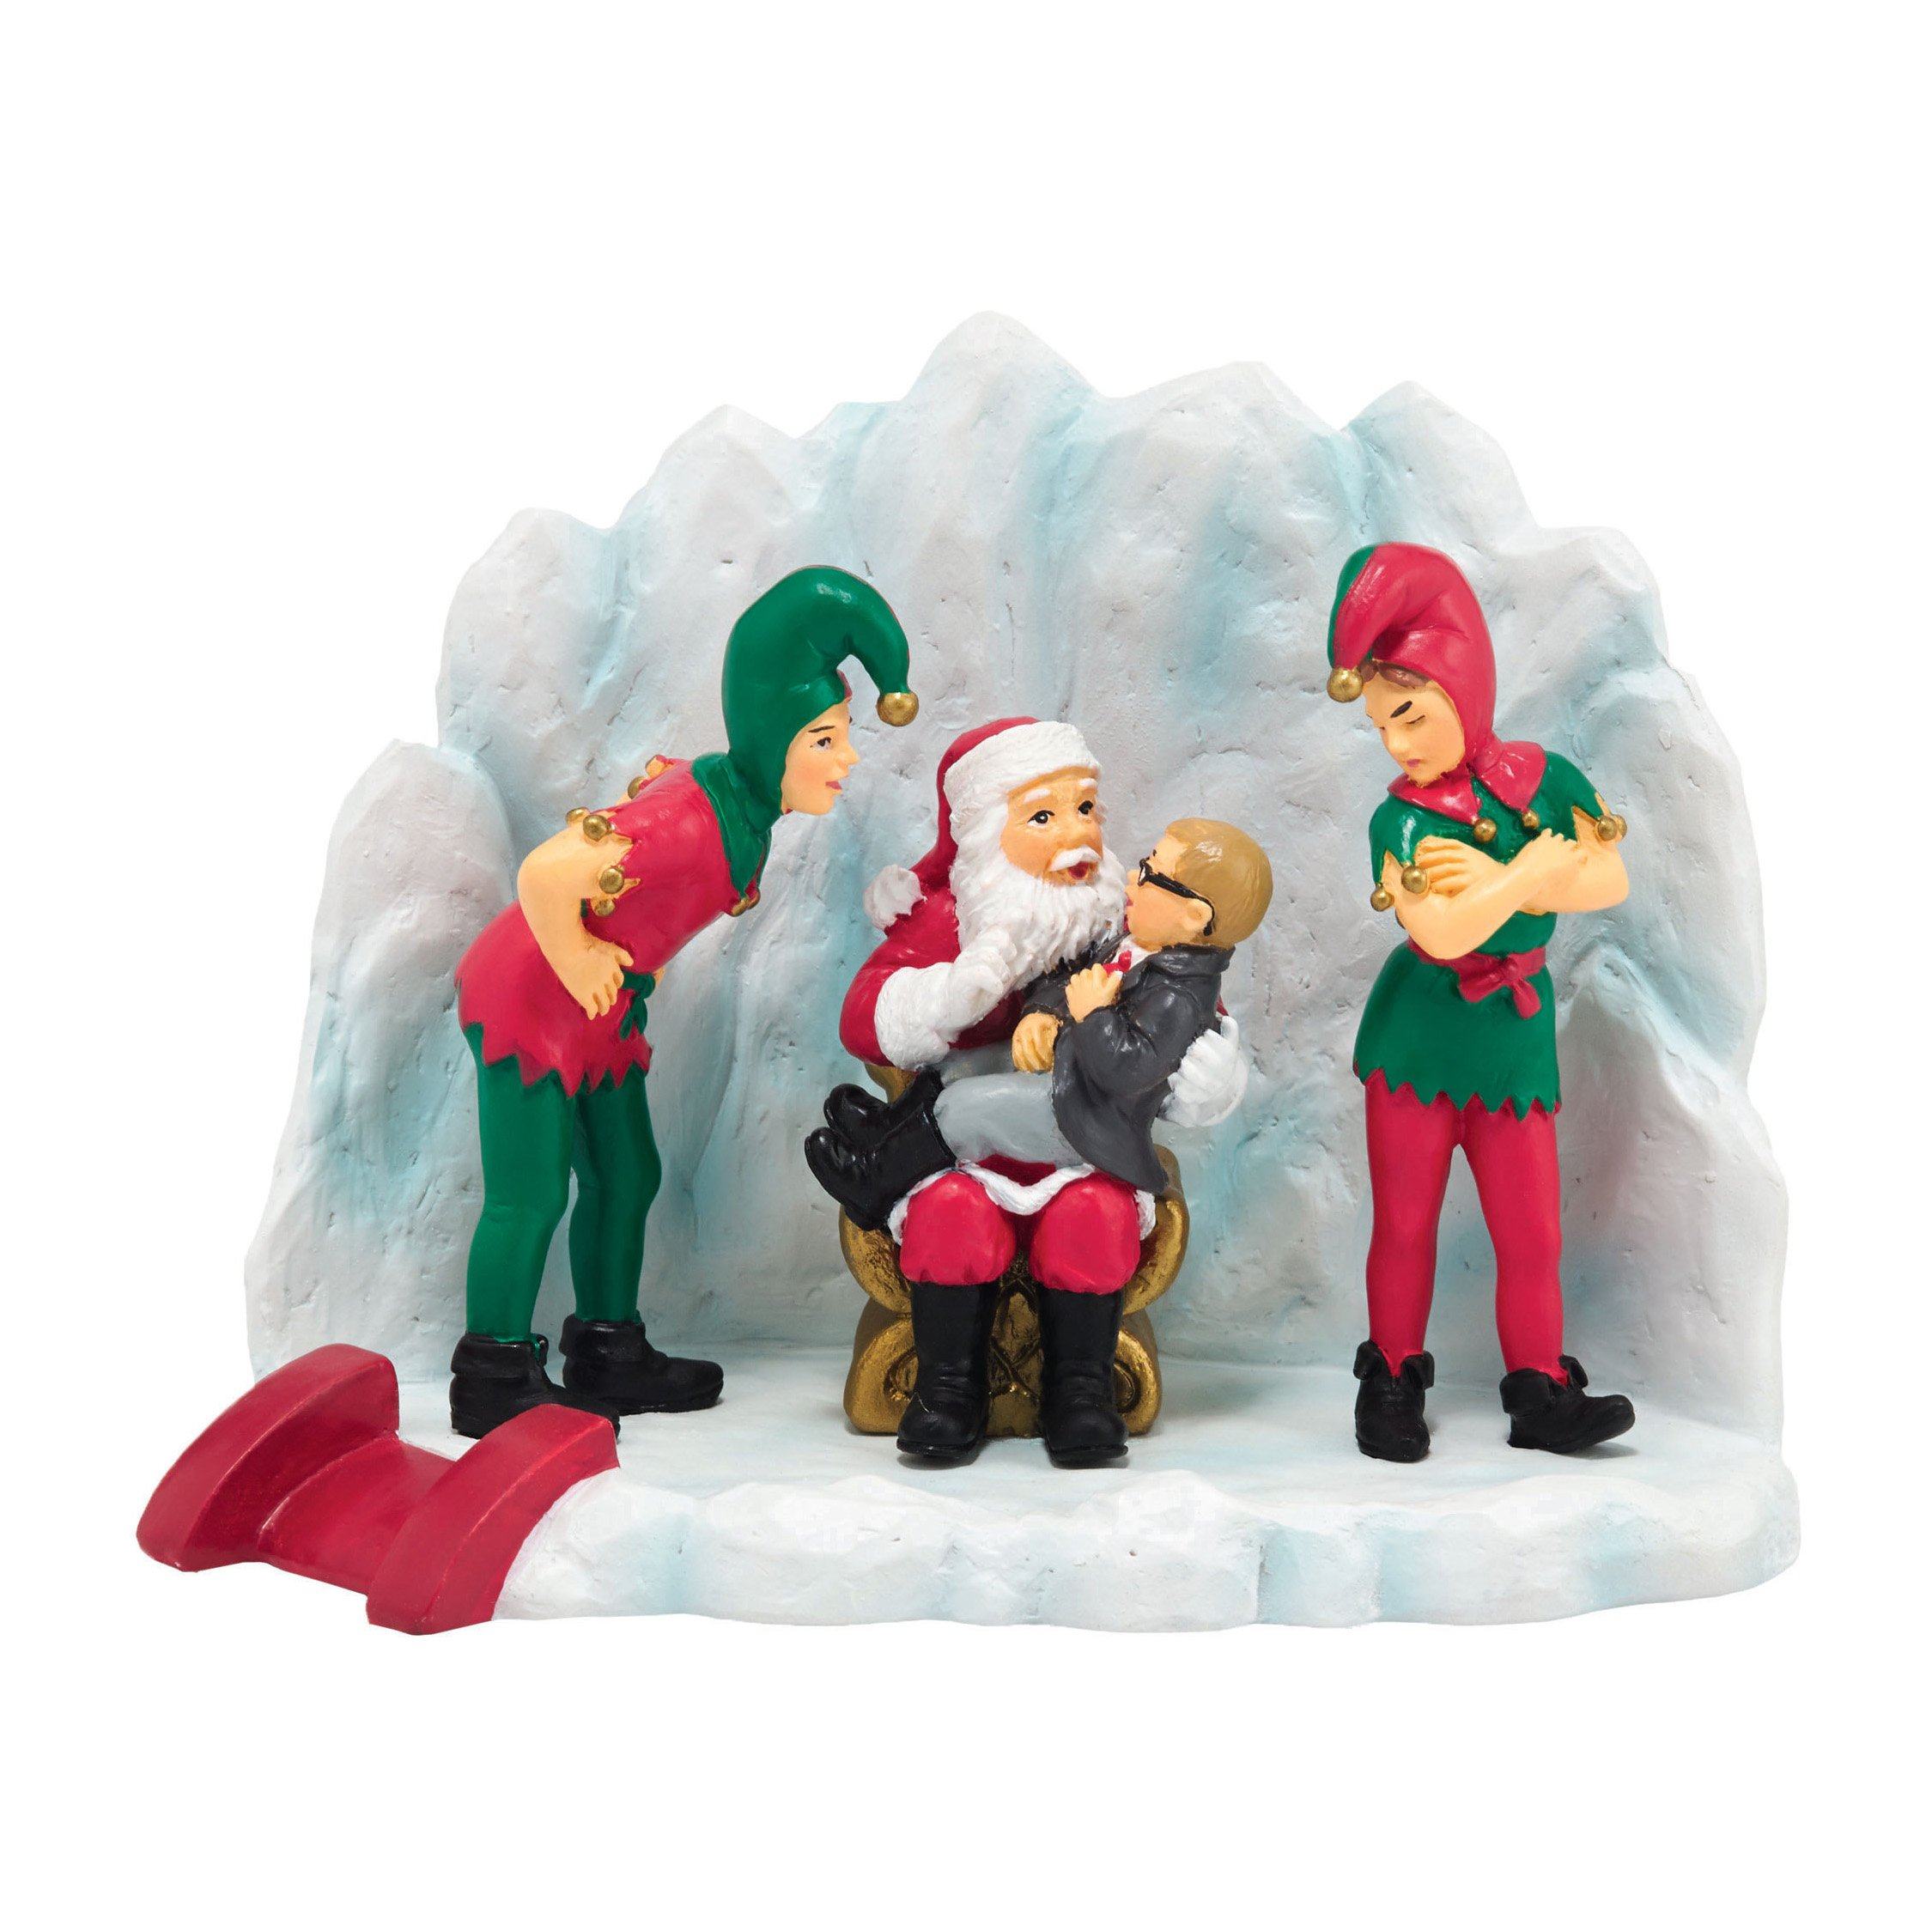 Department 56 A Christmas Story Village You'll Shoot Your Eye Out Kid Accessory Figurine, 3.125 inch